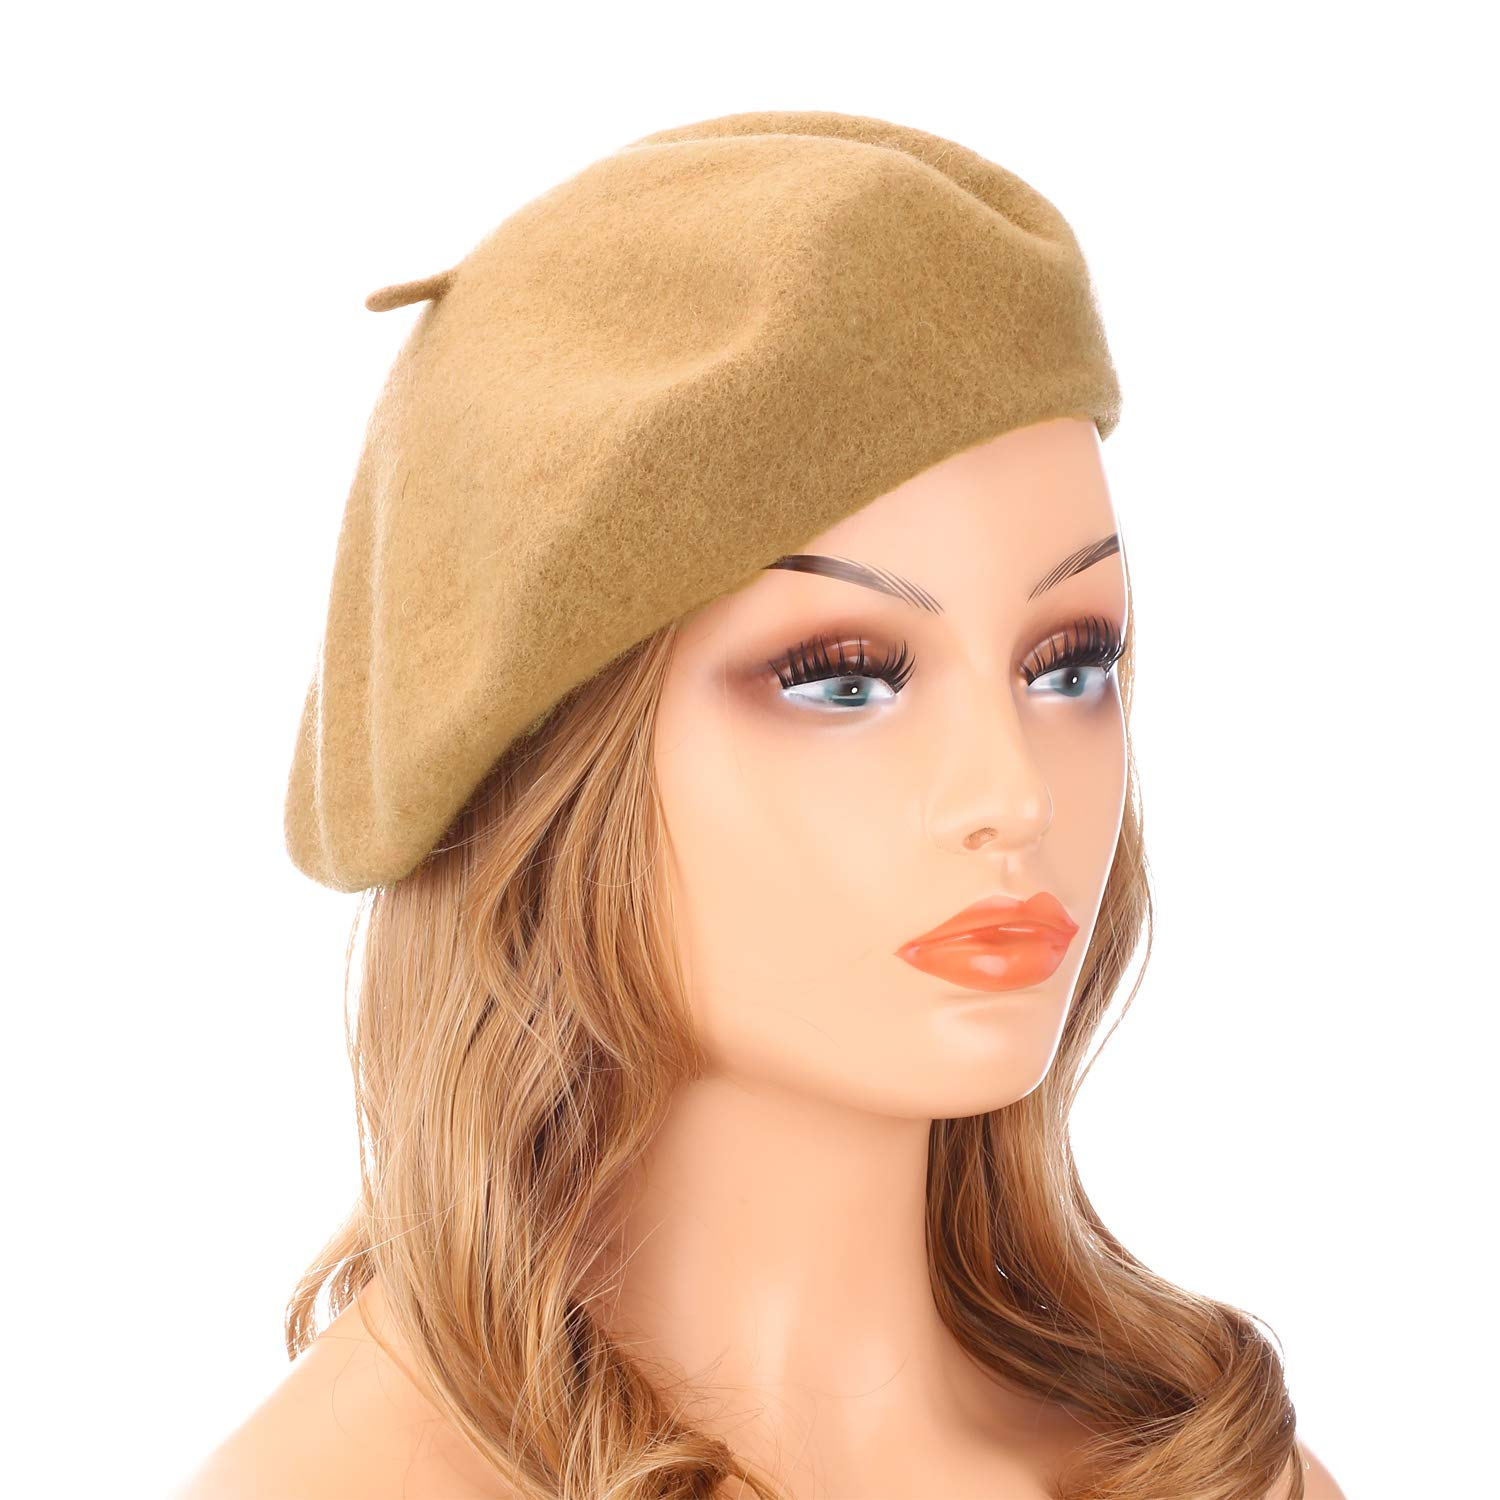 Wheebo Wool Beret Hat,Solid Color French Style Winter Warm Cap for Women Girls (Camel)